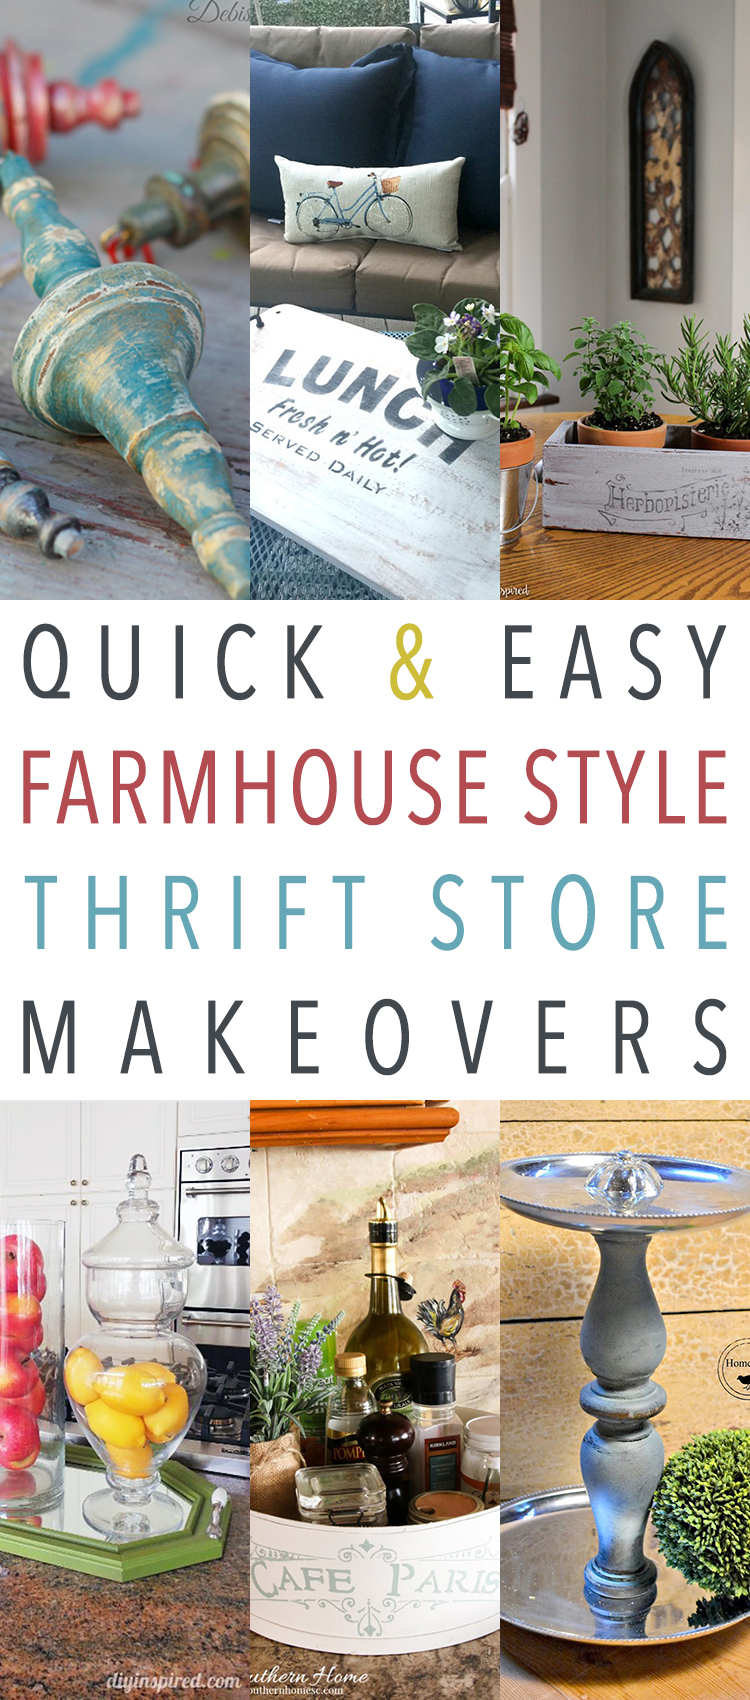 Quick and Easy Farmhouse Style Thrift Store Makeovers ...